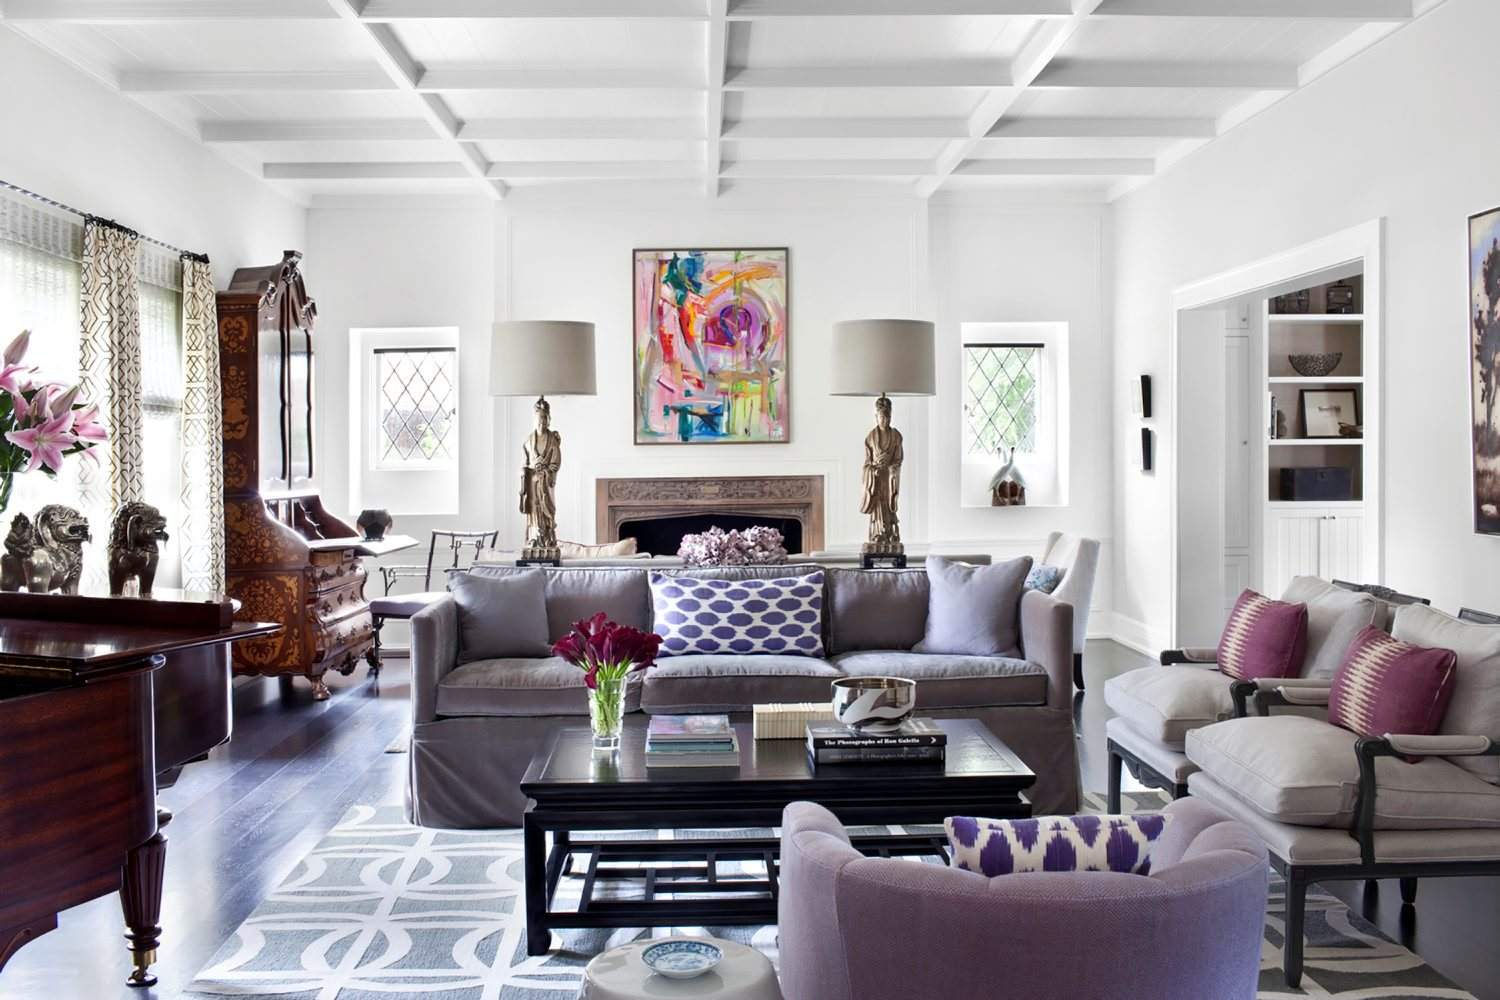 No color is too bold for décor, designers say